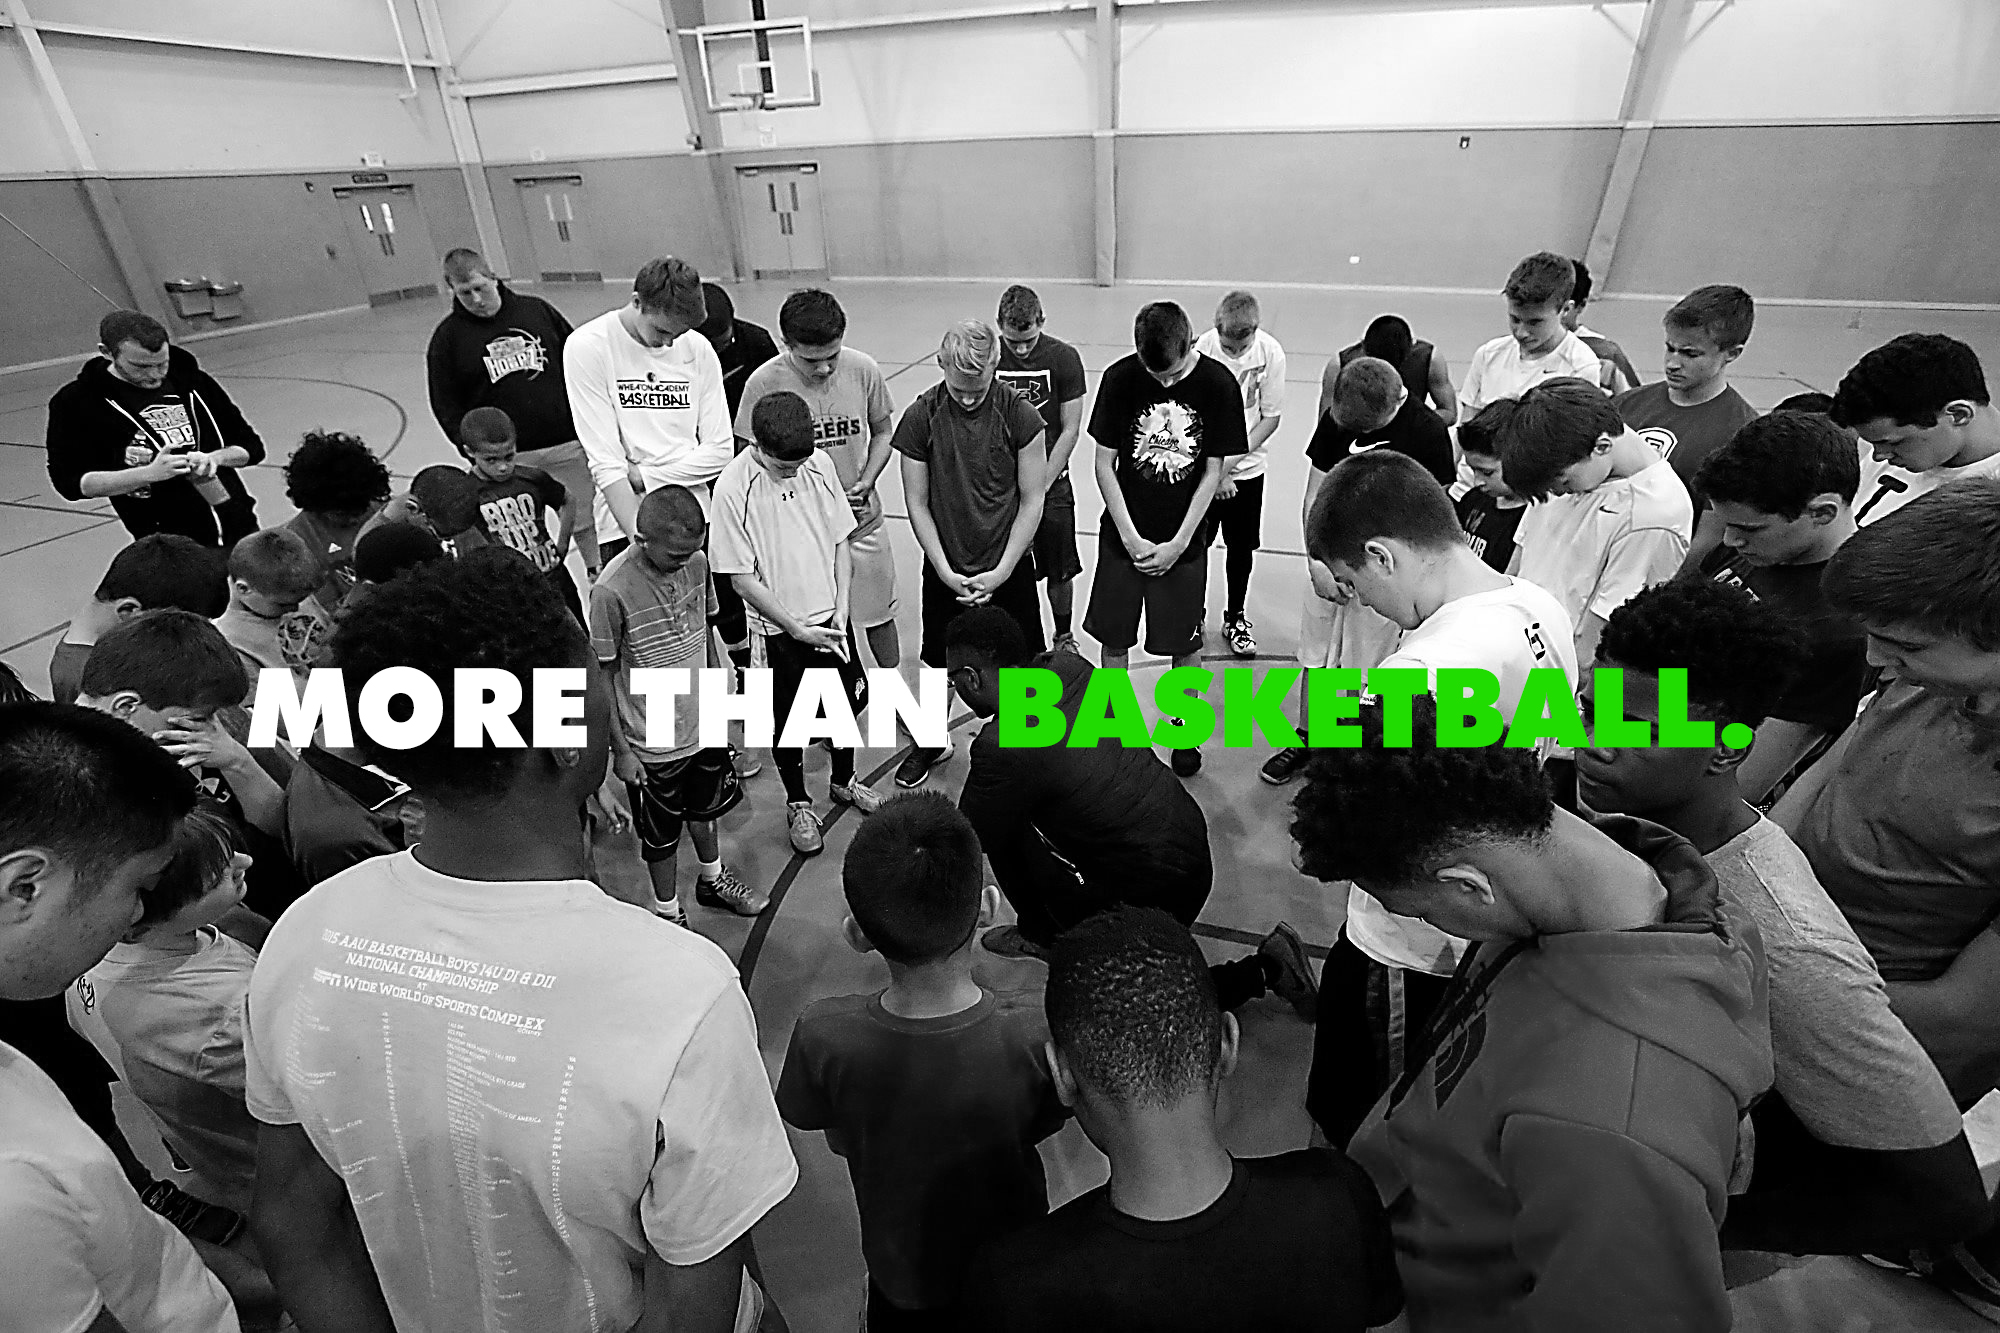 More than Basketball